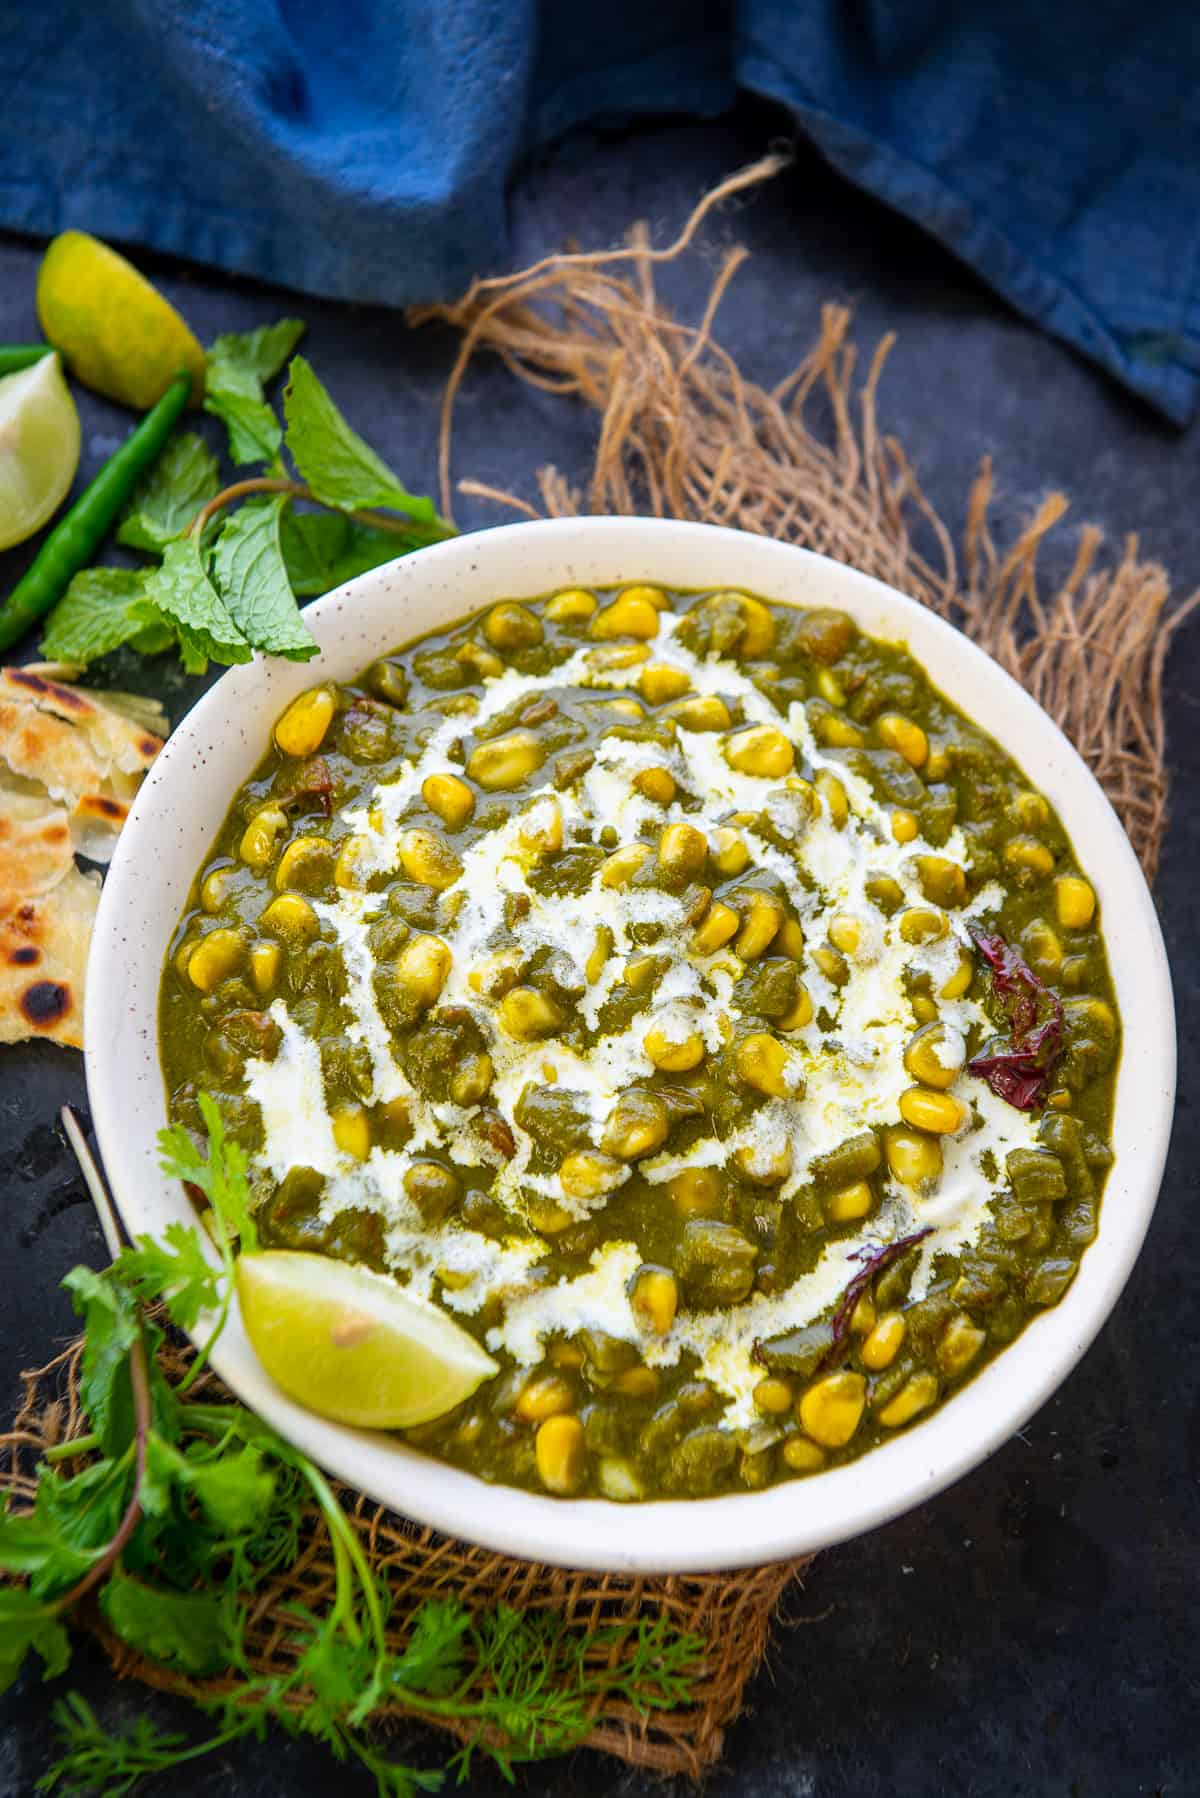 Palak corn served in a bowl.